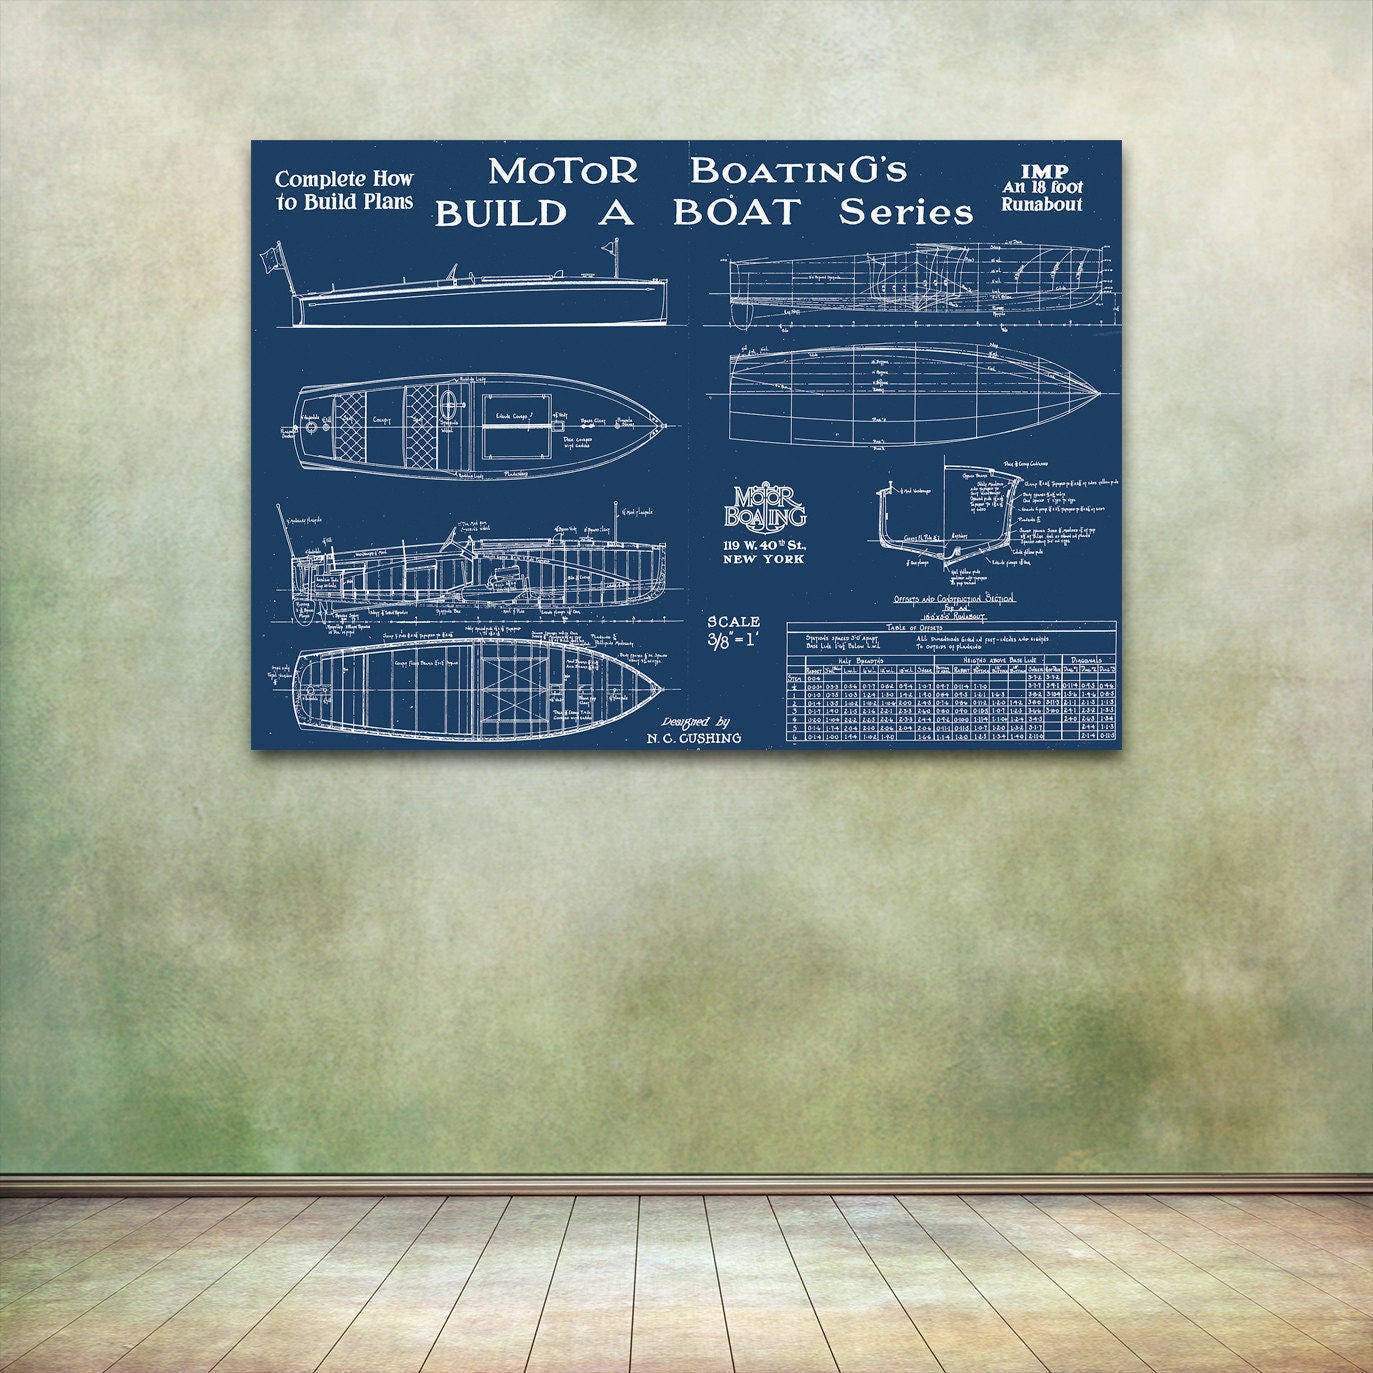 Print of vintage imp boat blueprint from motor boatings build a print of vintage imp boat blueprint from motor boatings build a boat series on your choice of matte paper photo paper or canvas malvernweather Gallery